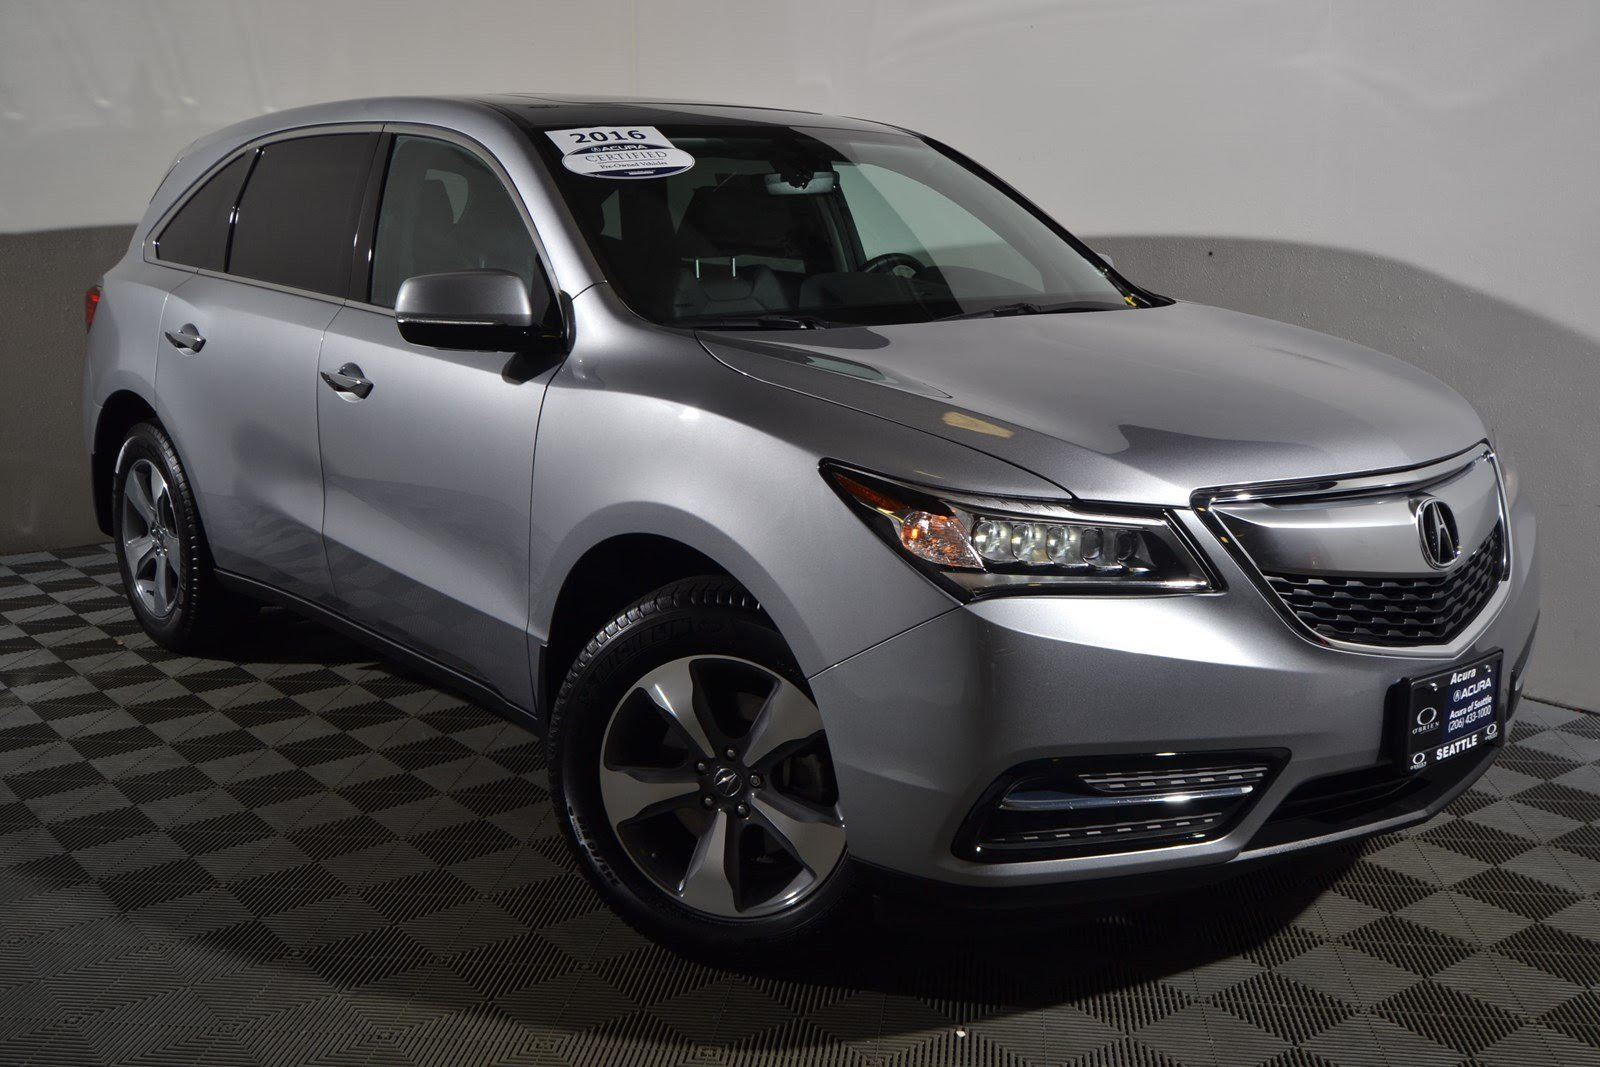 2016 Acura Mdx Sport Package For Sale 39 Used Cars From $31,992